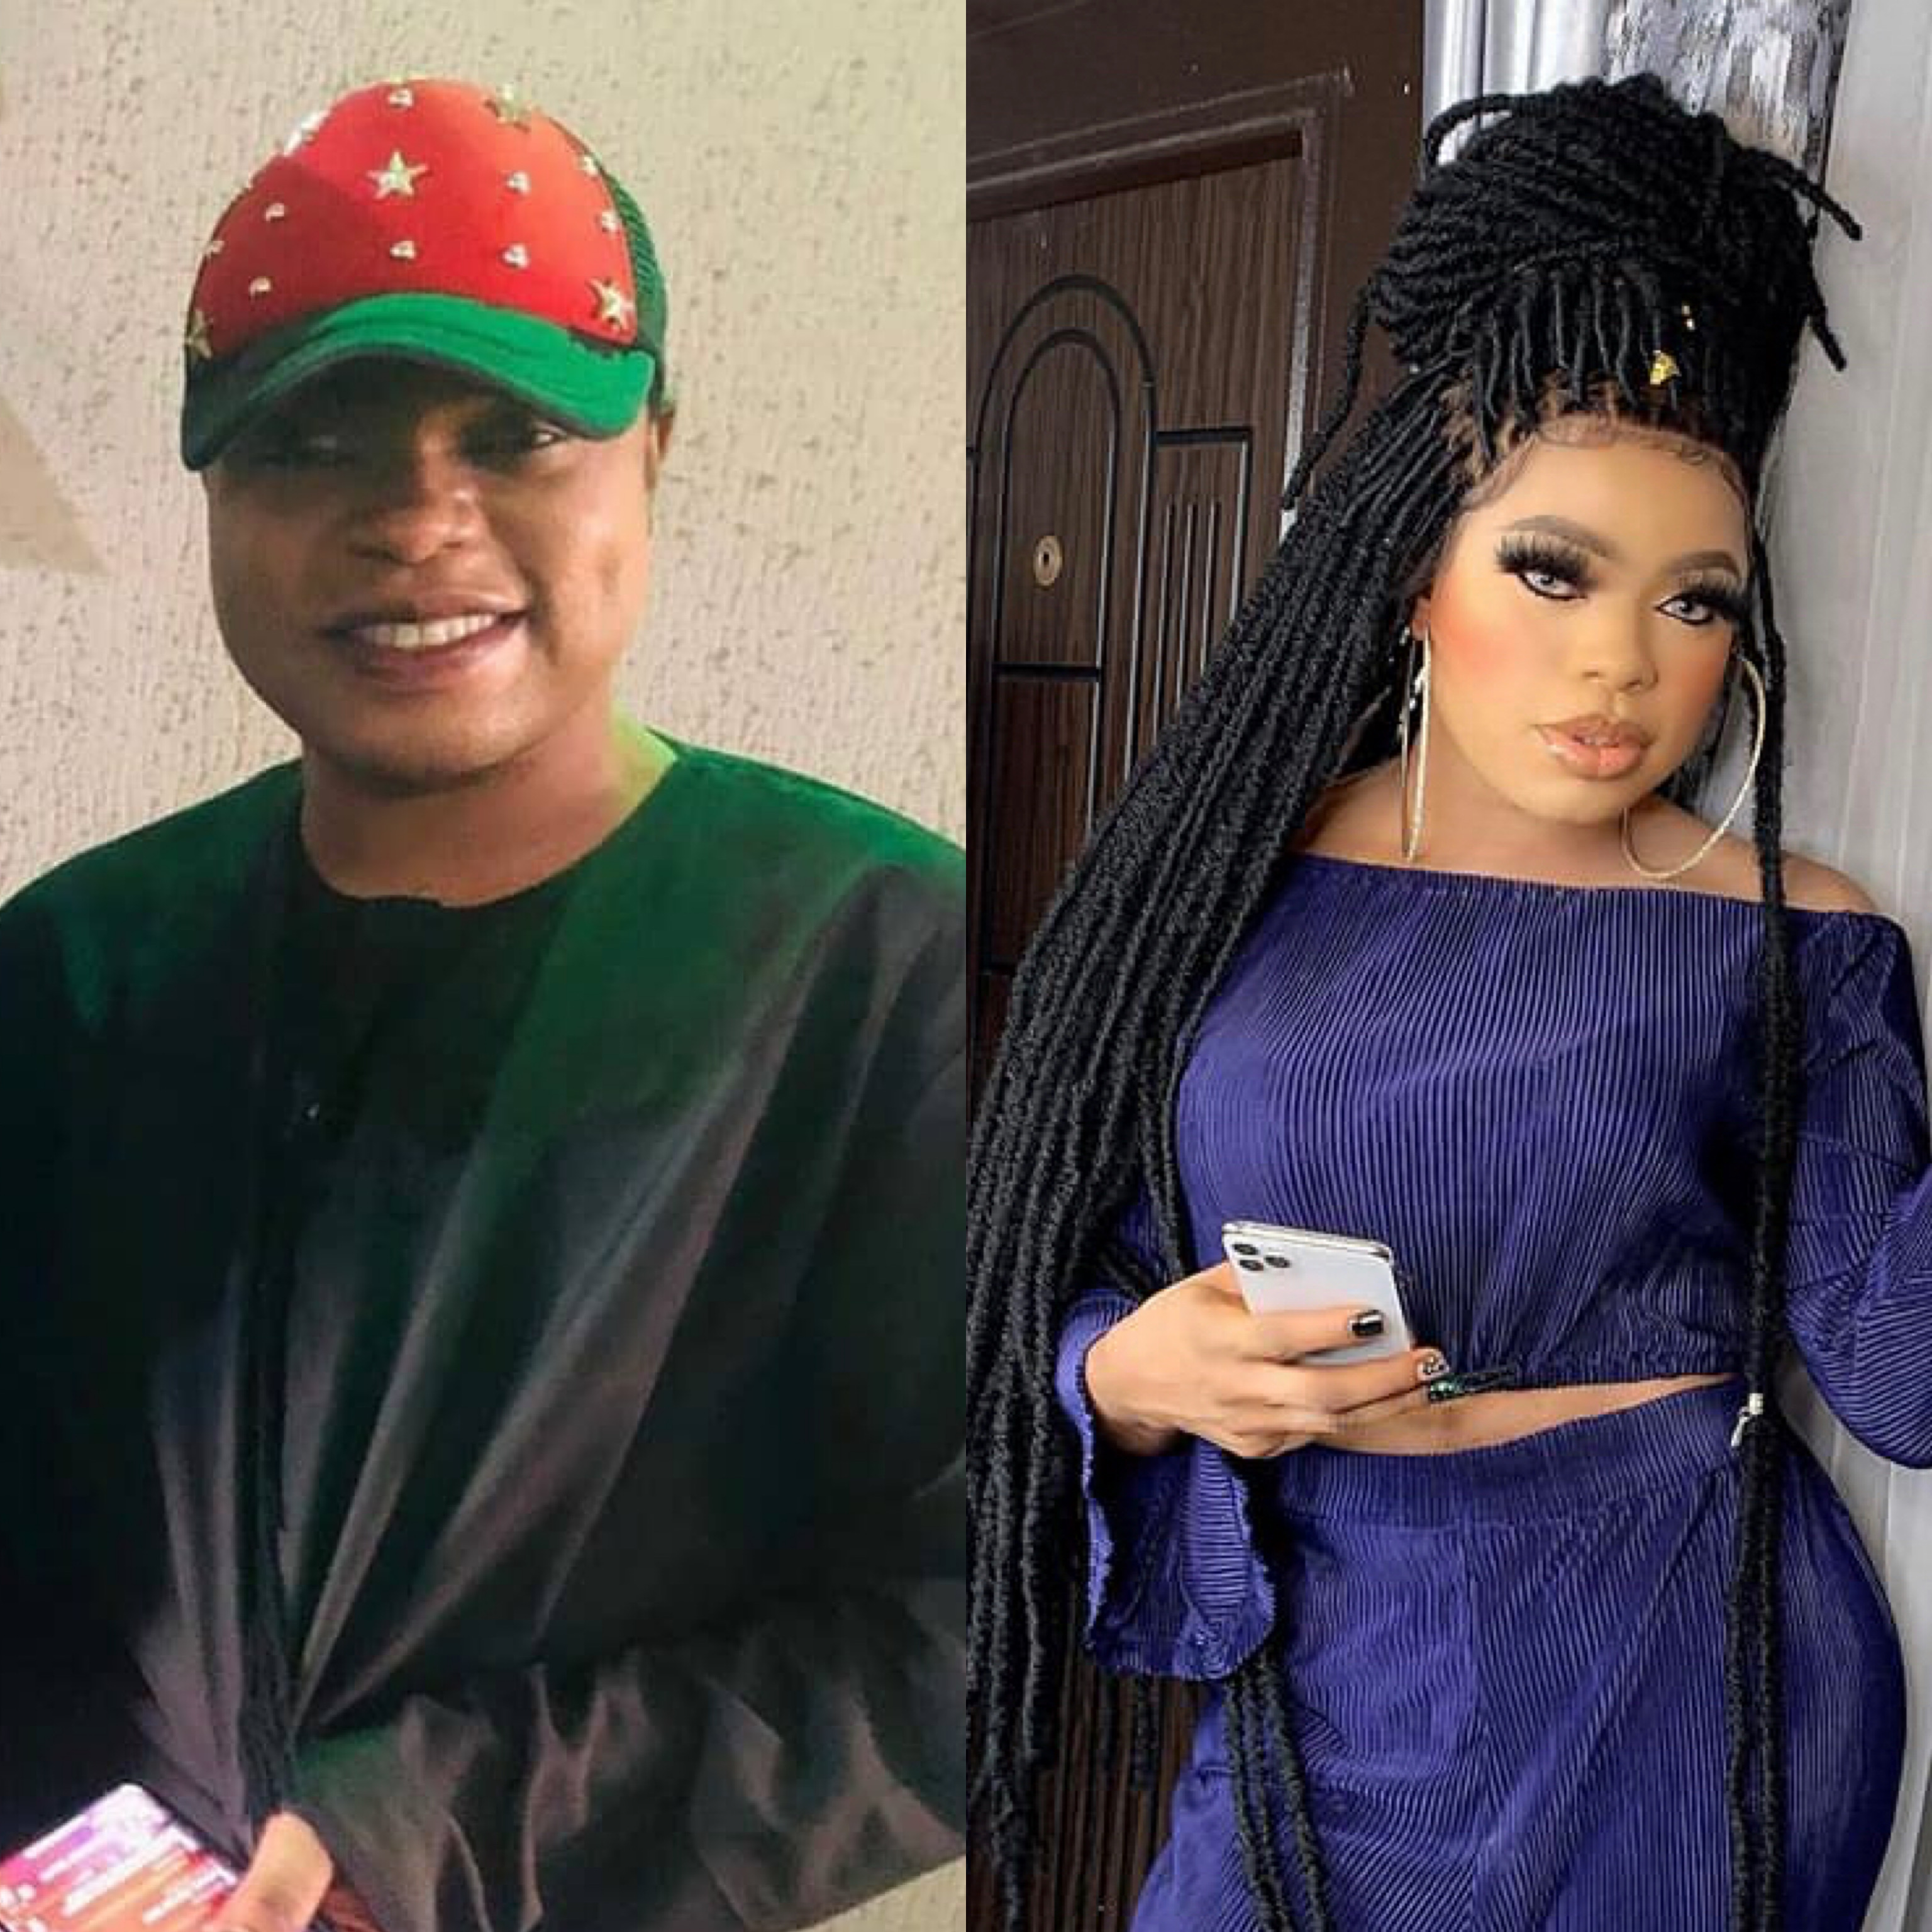 Bobrisky attends father's birthday dressed as a man